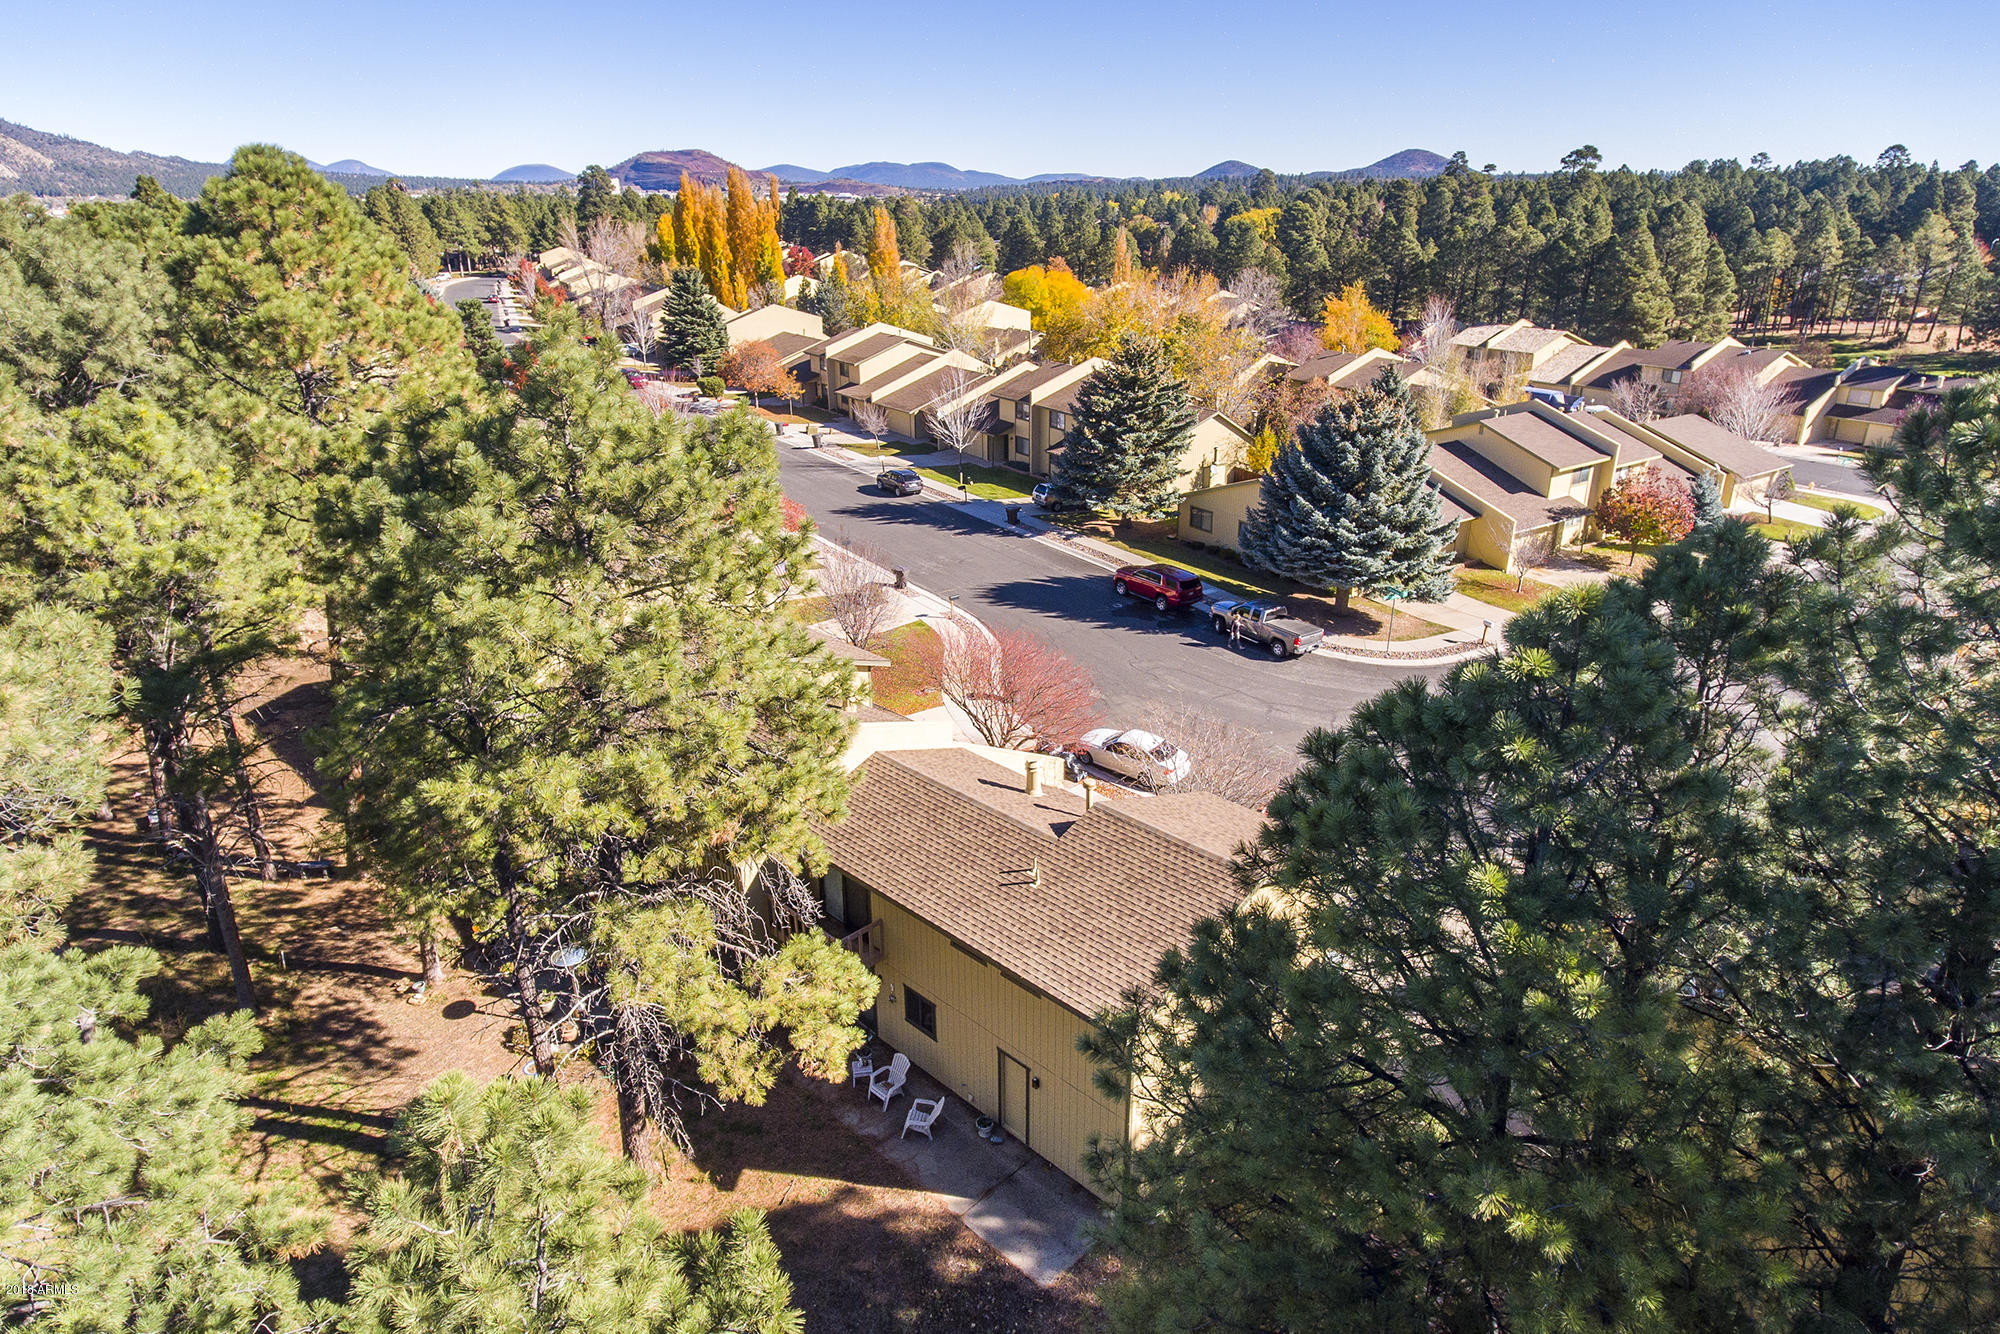 MLS 5843843 1601 N Lakeview Lane, Flagstaff, AZ Flagstaff AZ Condo or Townhome